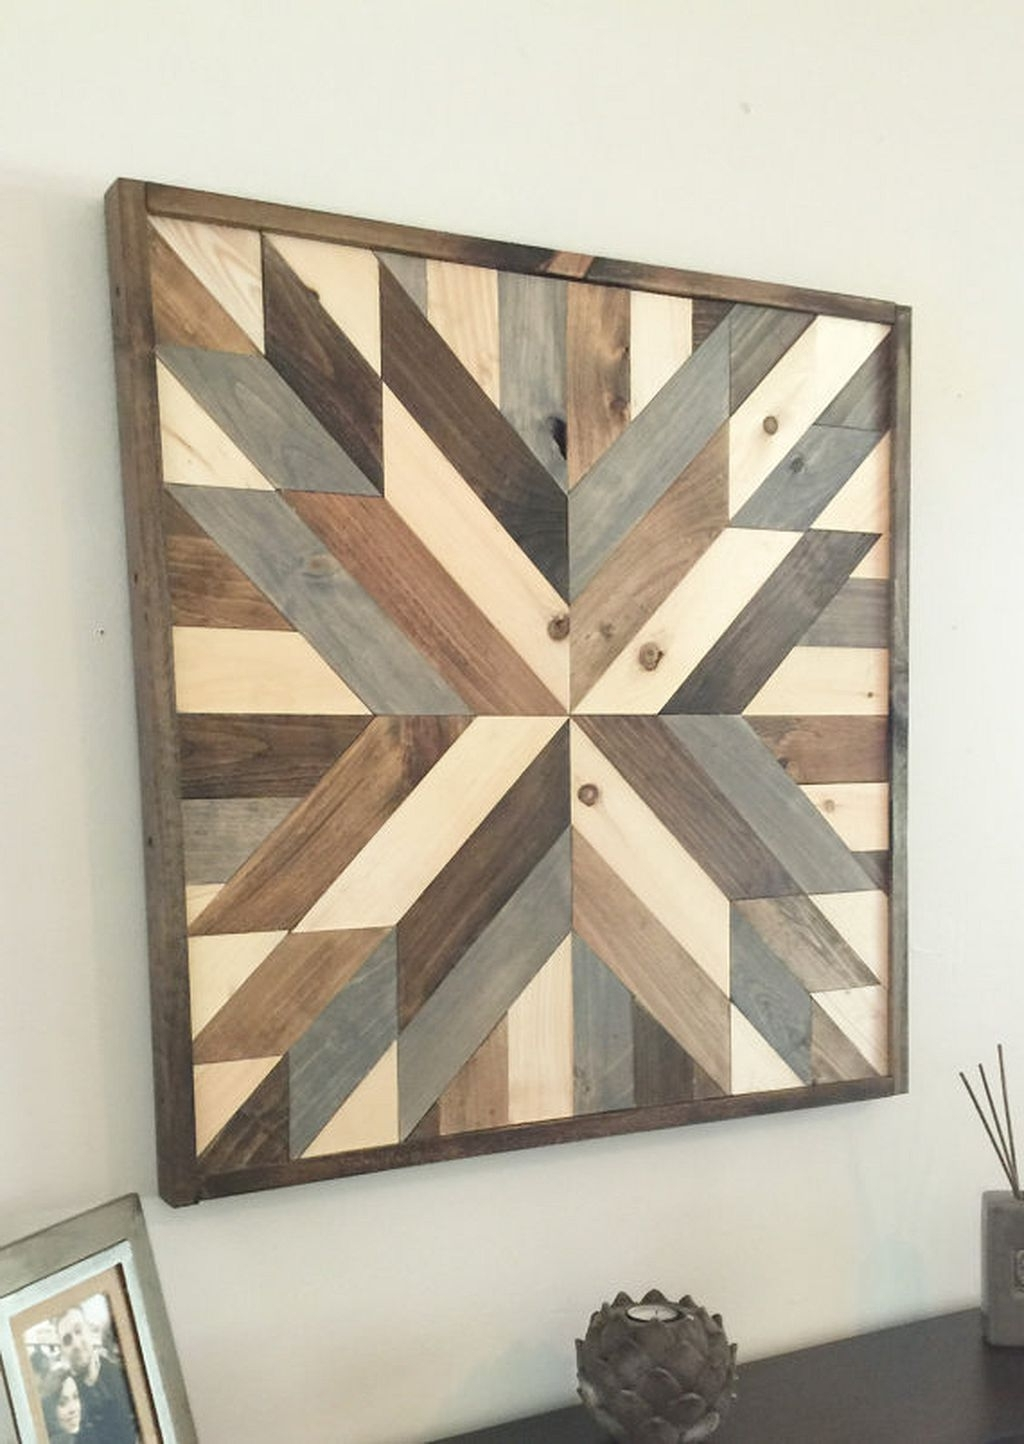 2017 Nice 50+ Rustic Wall Decor Ideas Https://architecturemagz/50 With Regard To Rustic Wall Art (View 1 of 15)